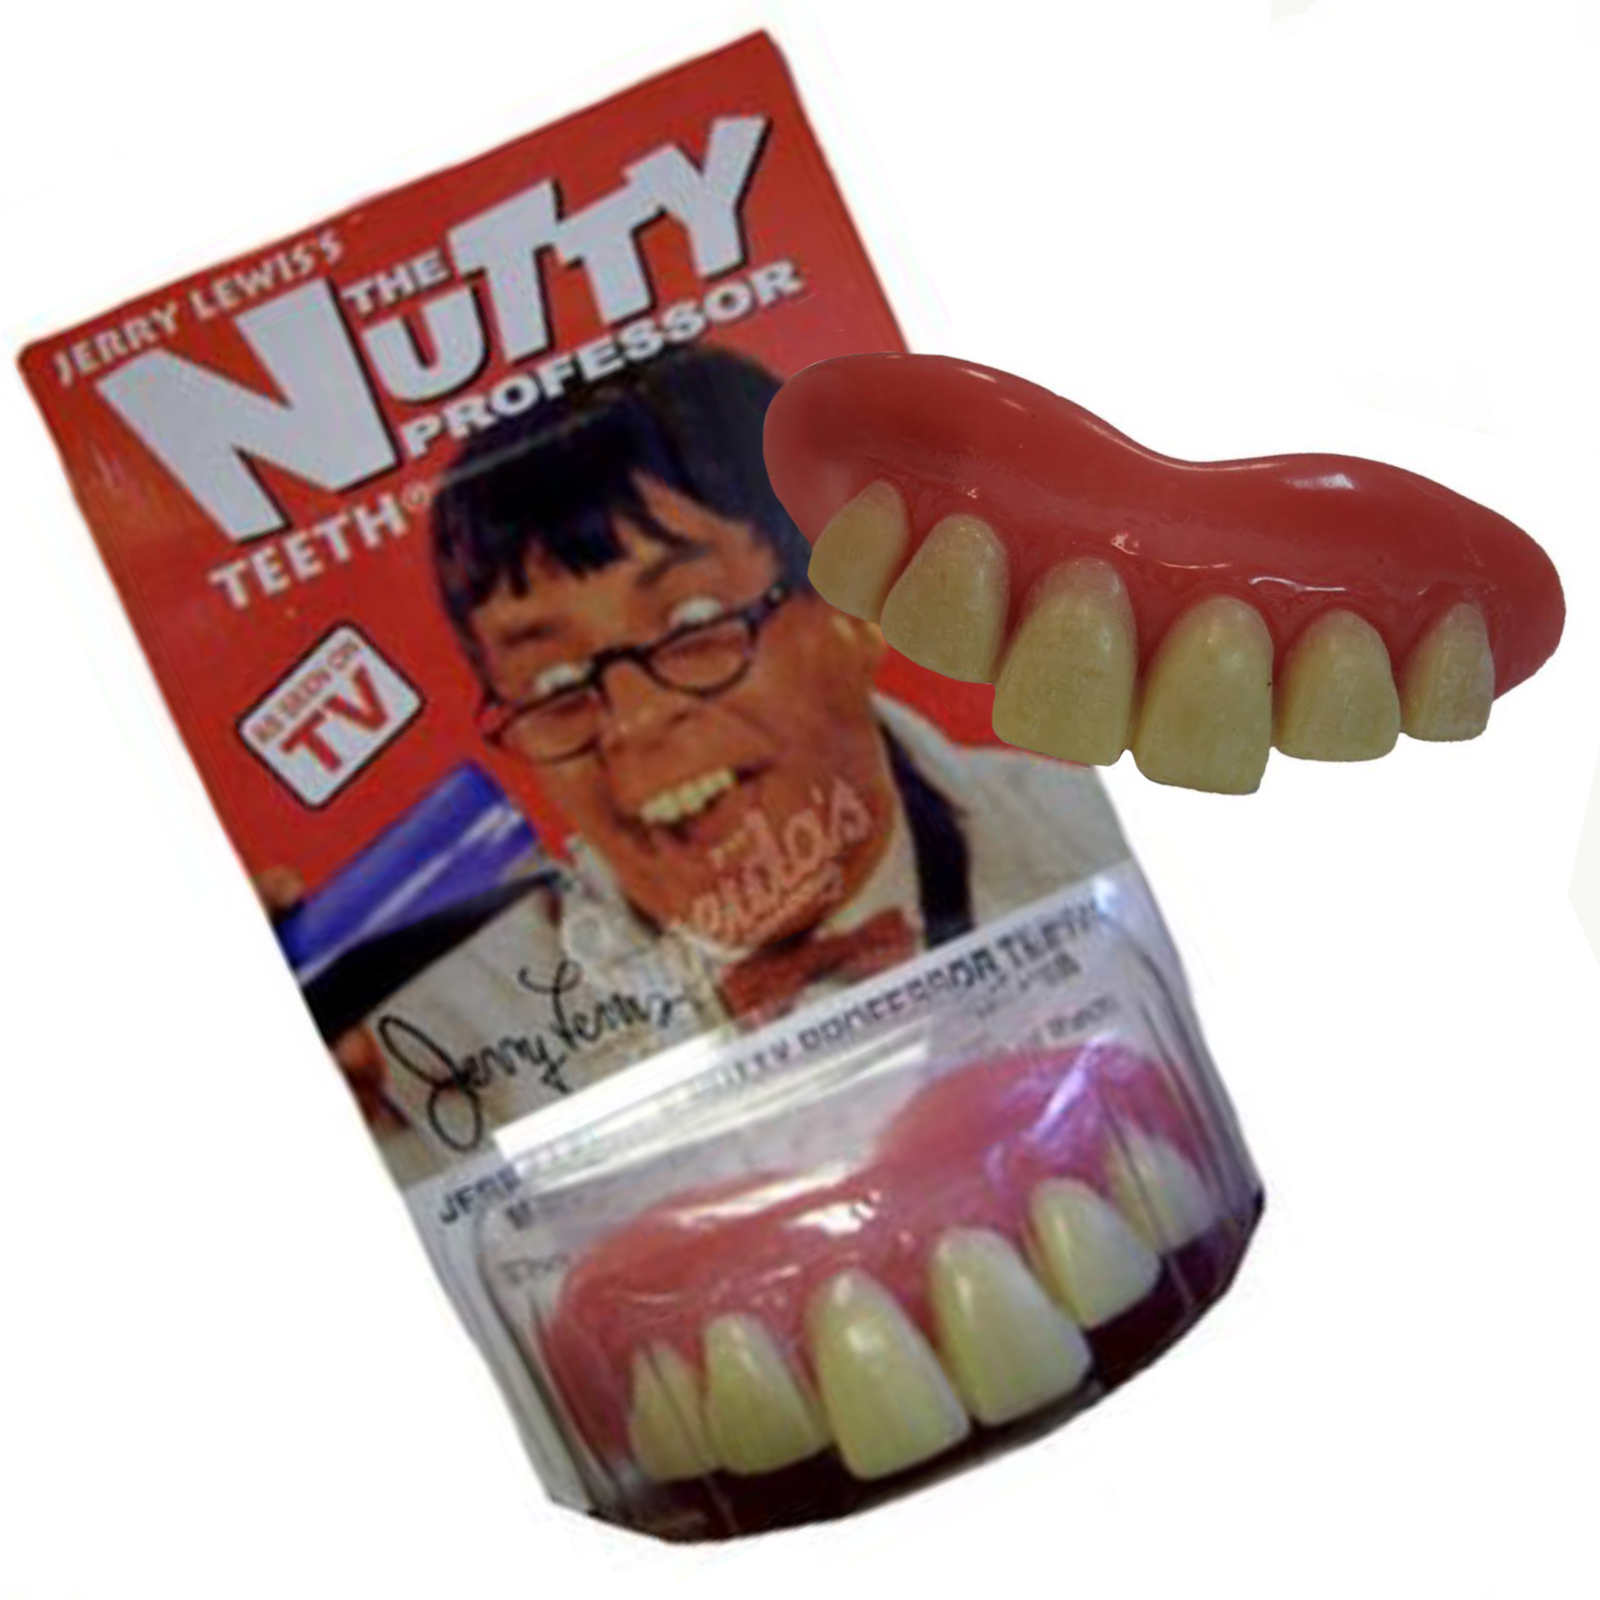 The Nutty Professor Teeth